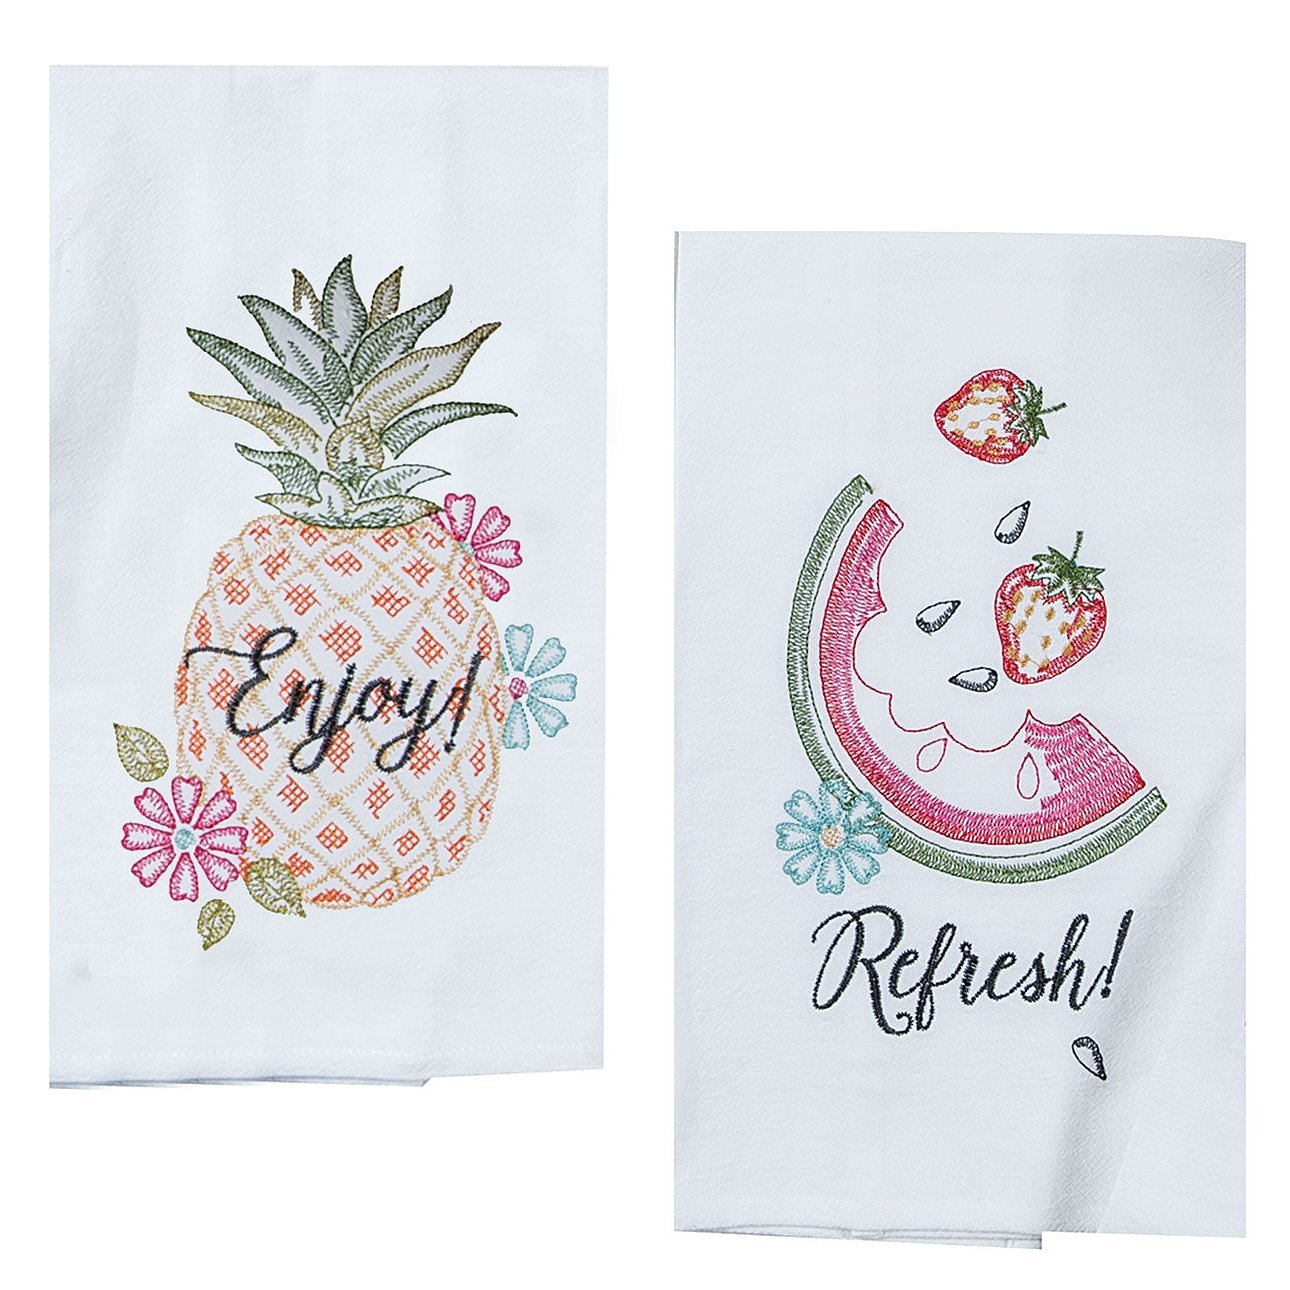 Kay Dee Designs Hawaiian Summer Fruit Embroidered Kitchen Towel Set Hand Towels Watermelons And Pineapple 2 Pc Dish Cloths With Melon And Pineapples